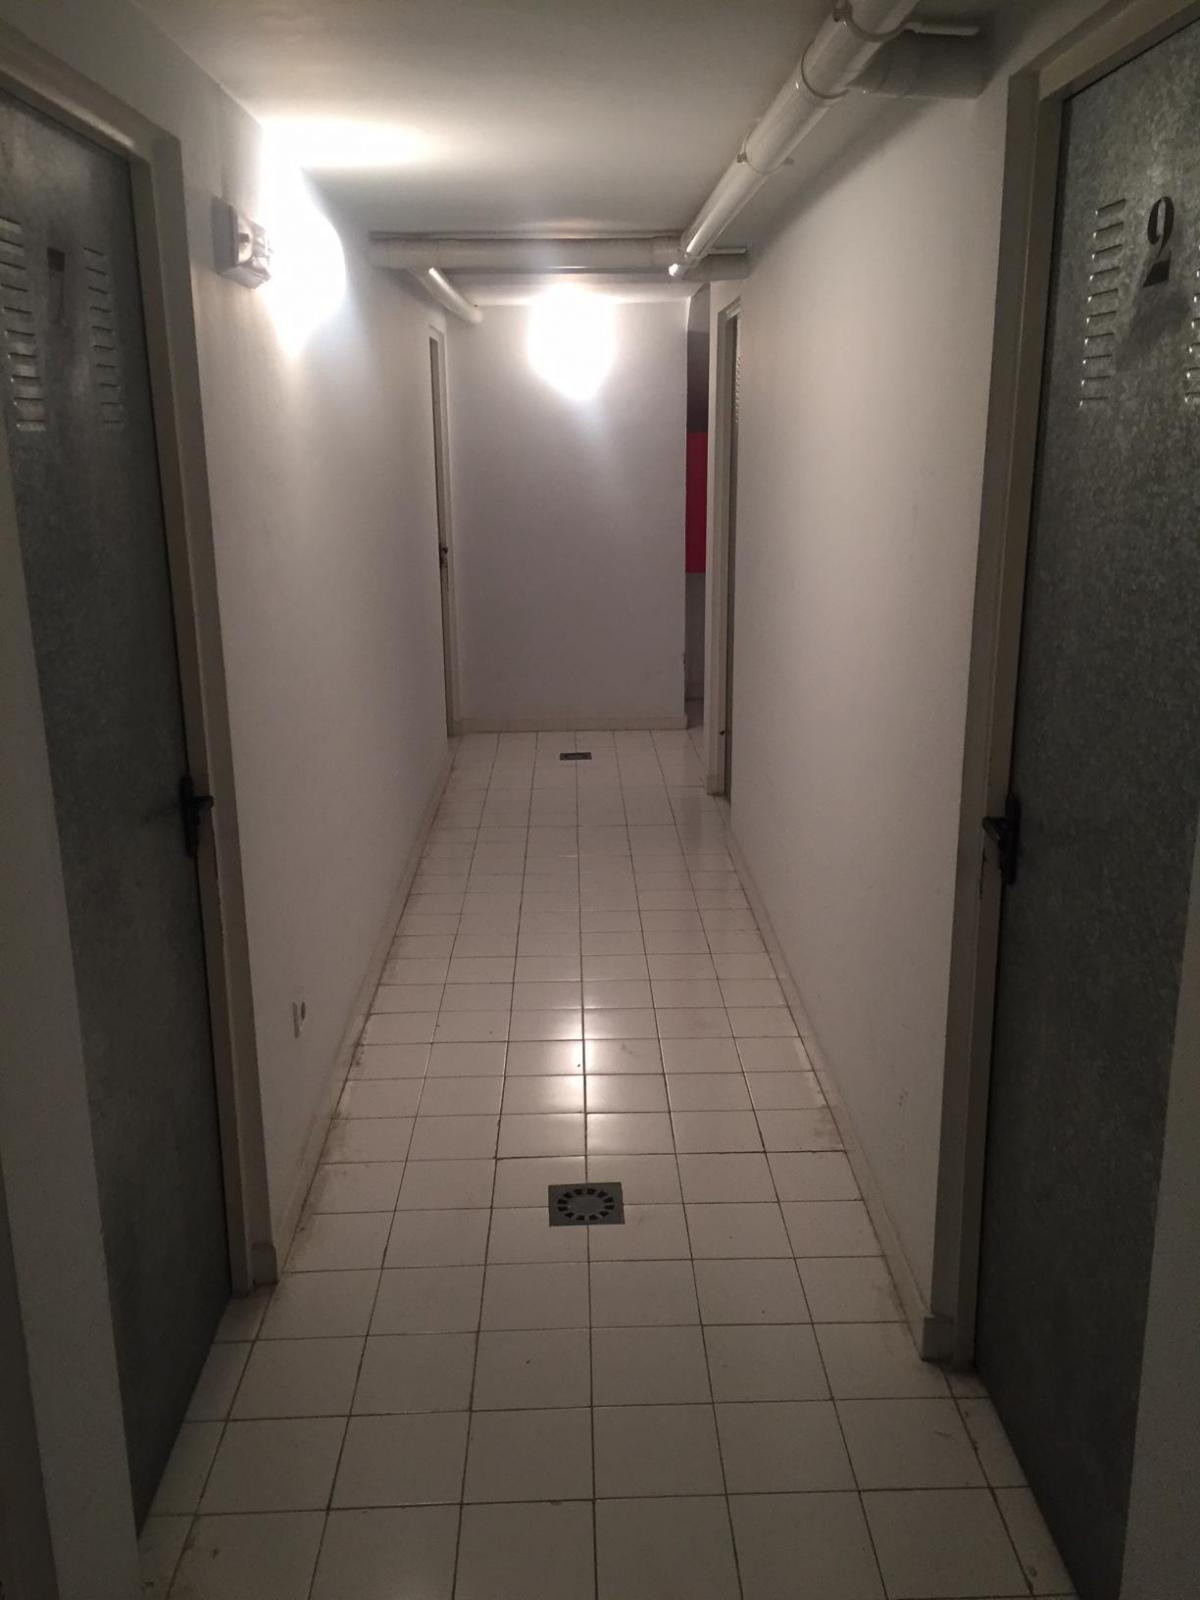 Opportunity to buy storage room in the center of Fuengirola, next to bus station Located in good bui,Spain